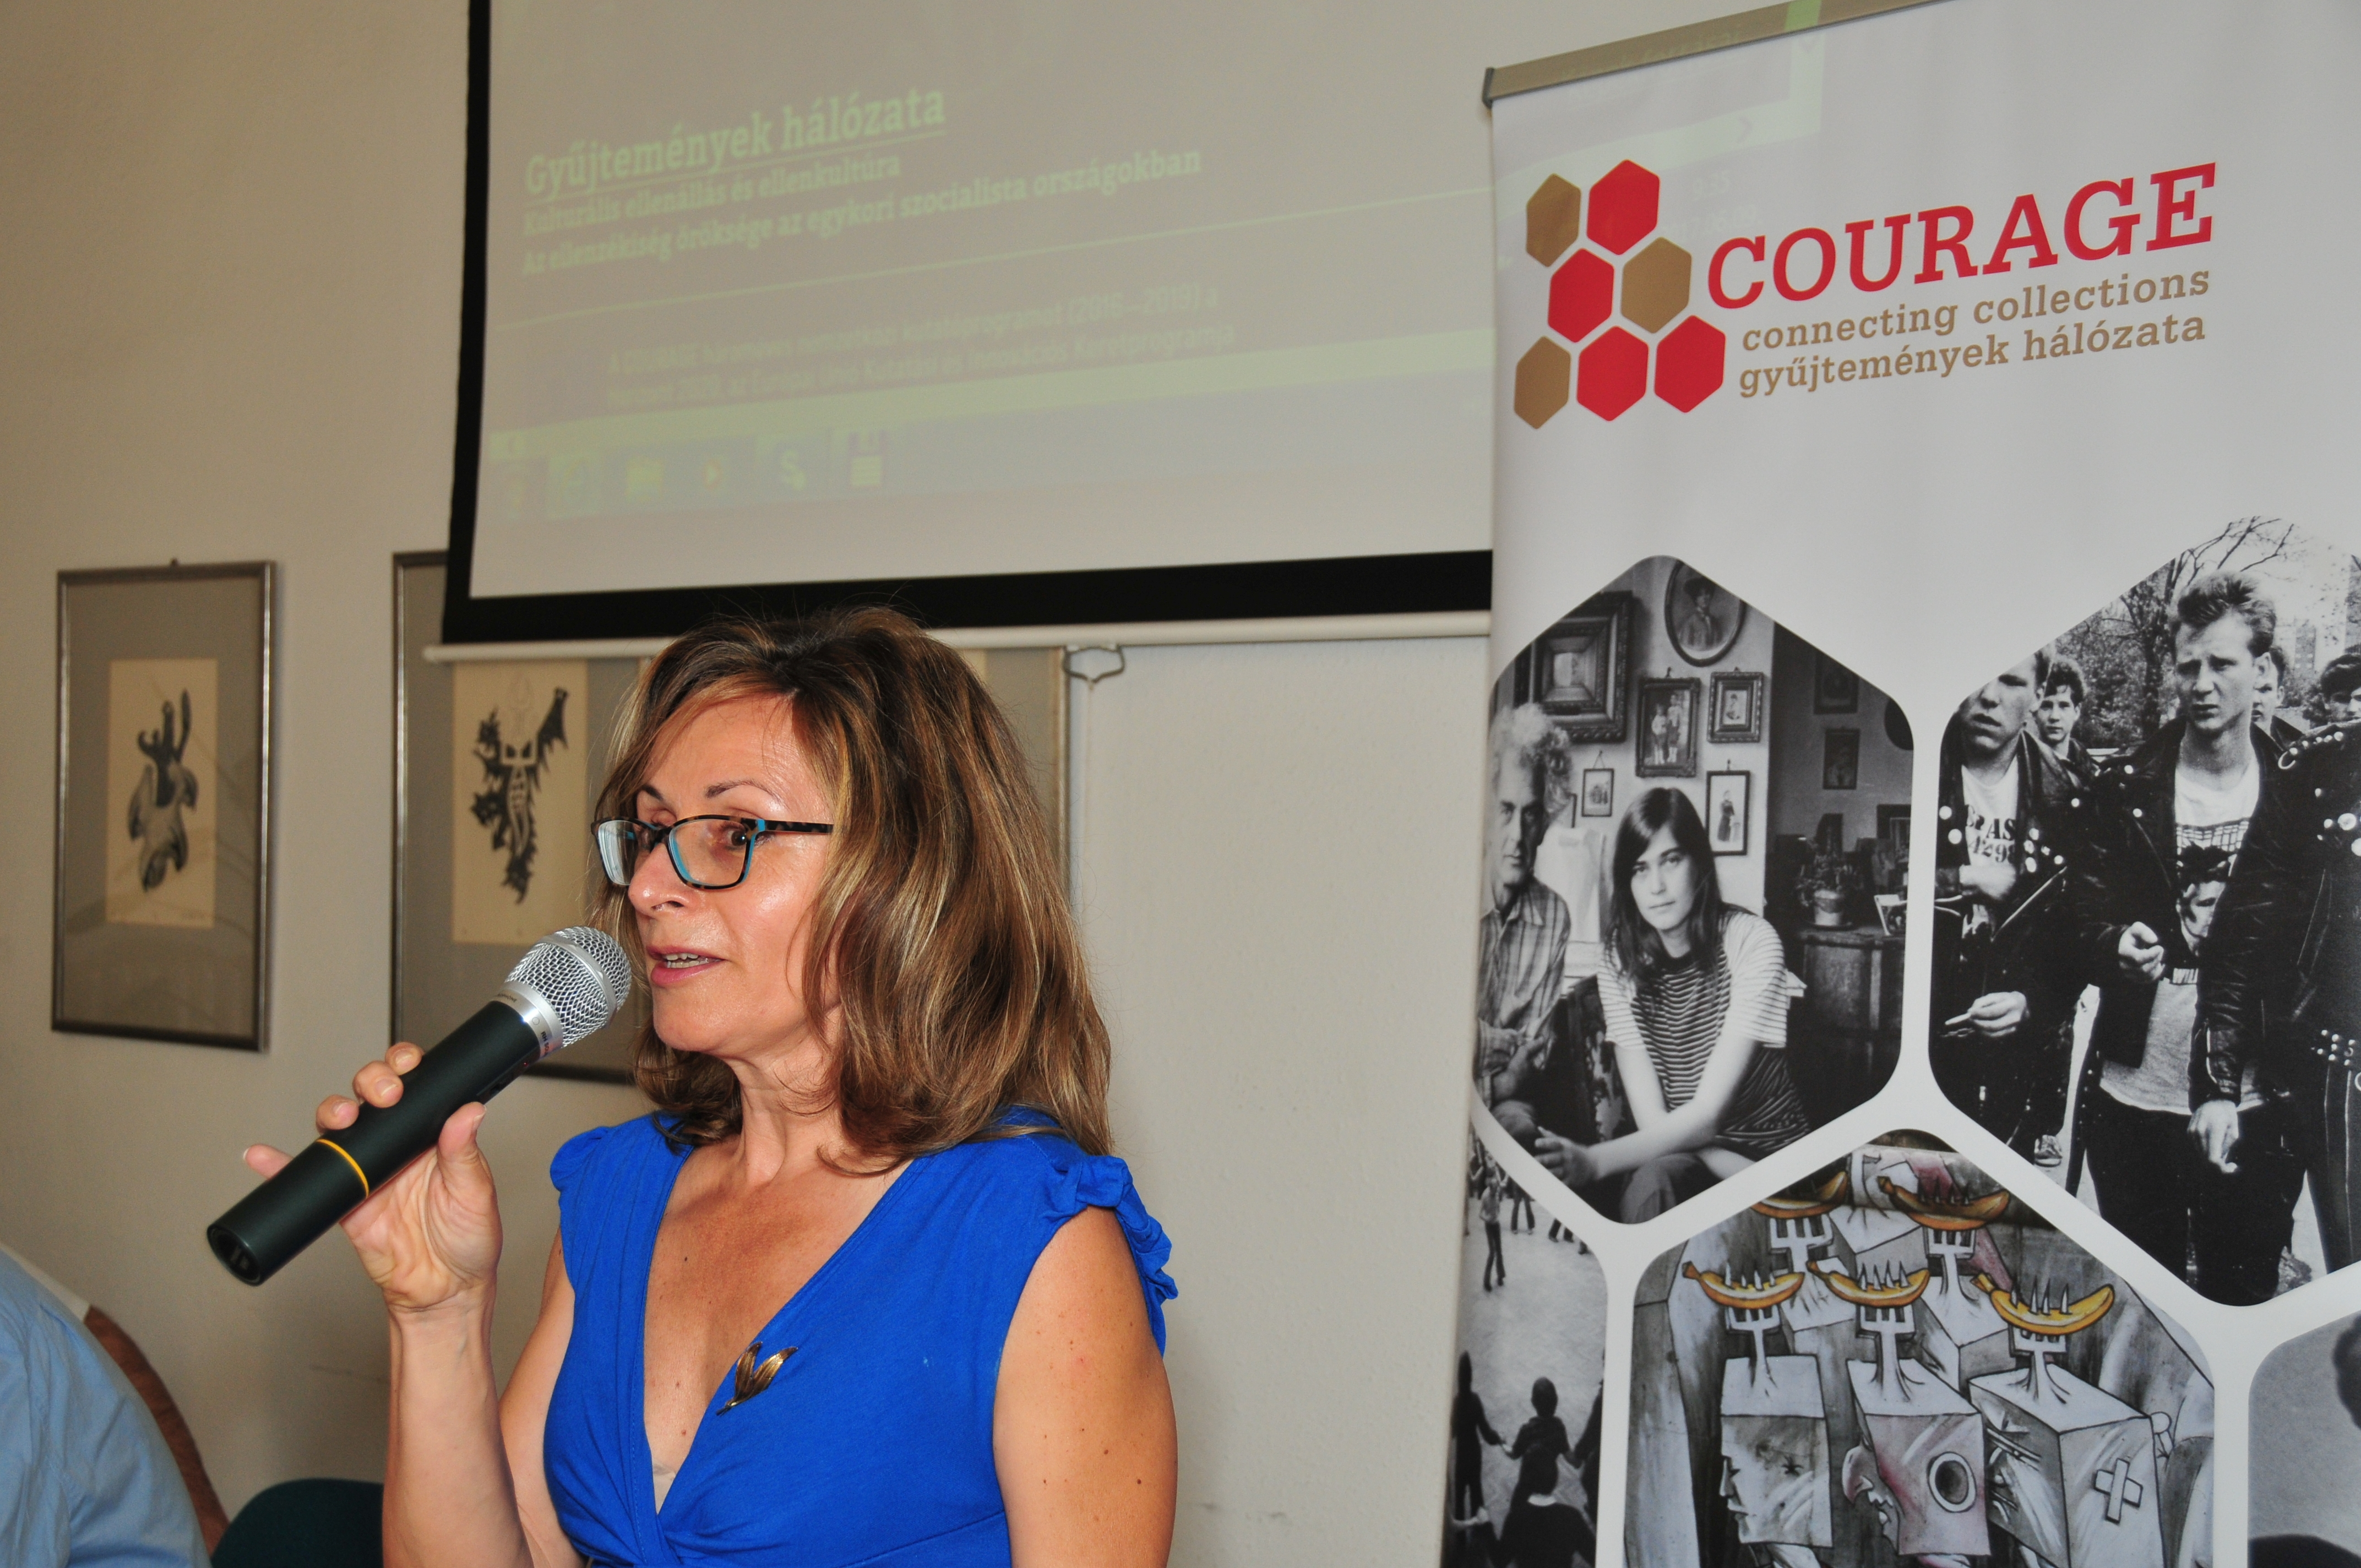 Katalin Somlai at the Oral History Conference of COURAGE in June 2017.